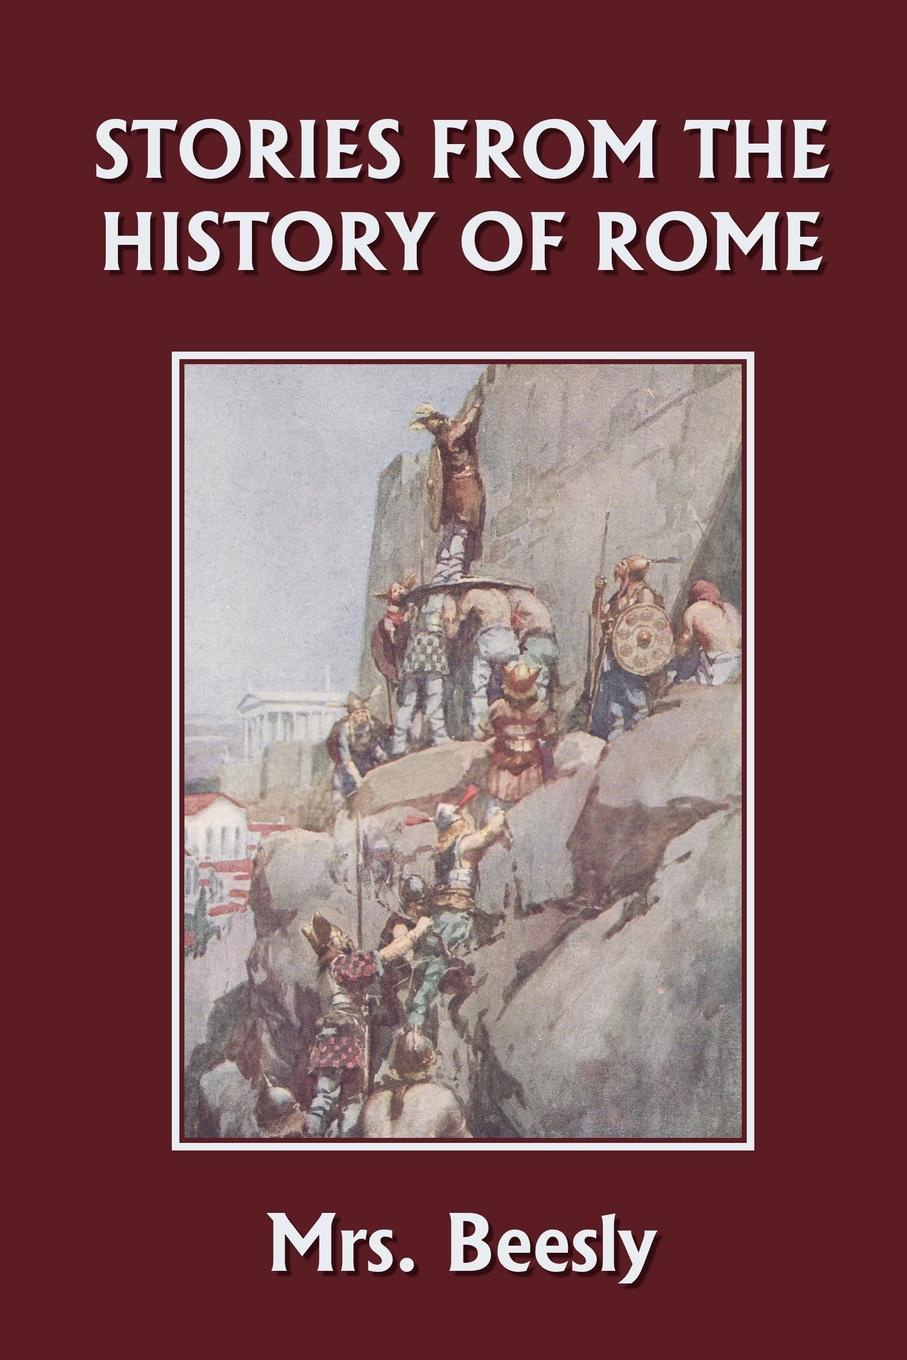 цены Mrs. Beesly Stories from the History of Rome (Yesterday's Classics)